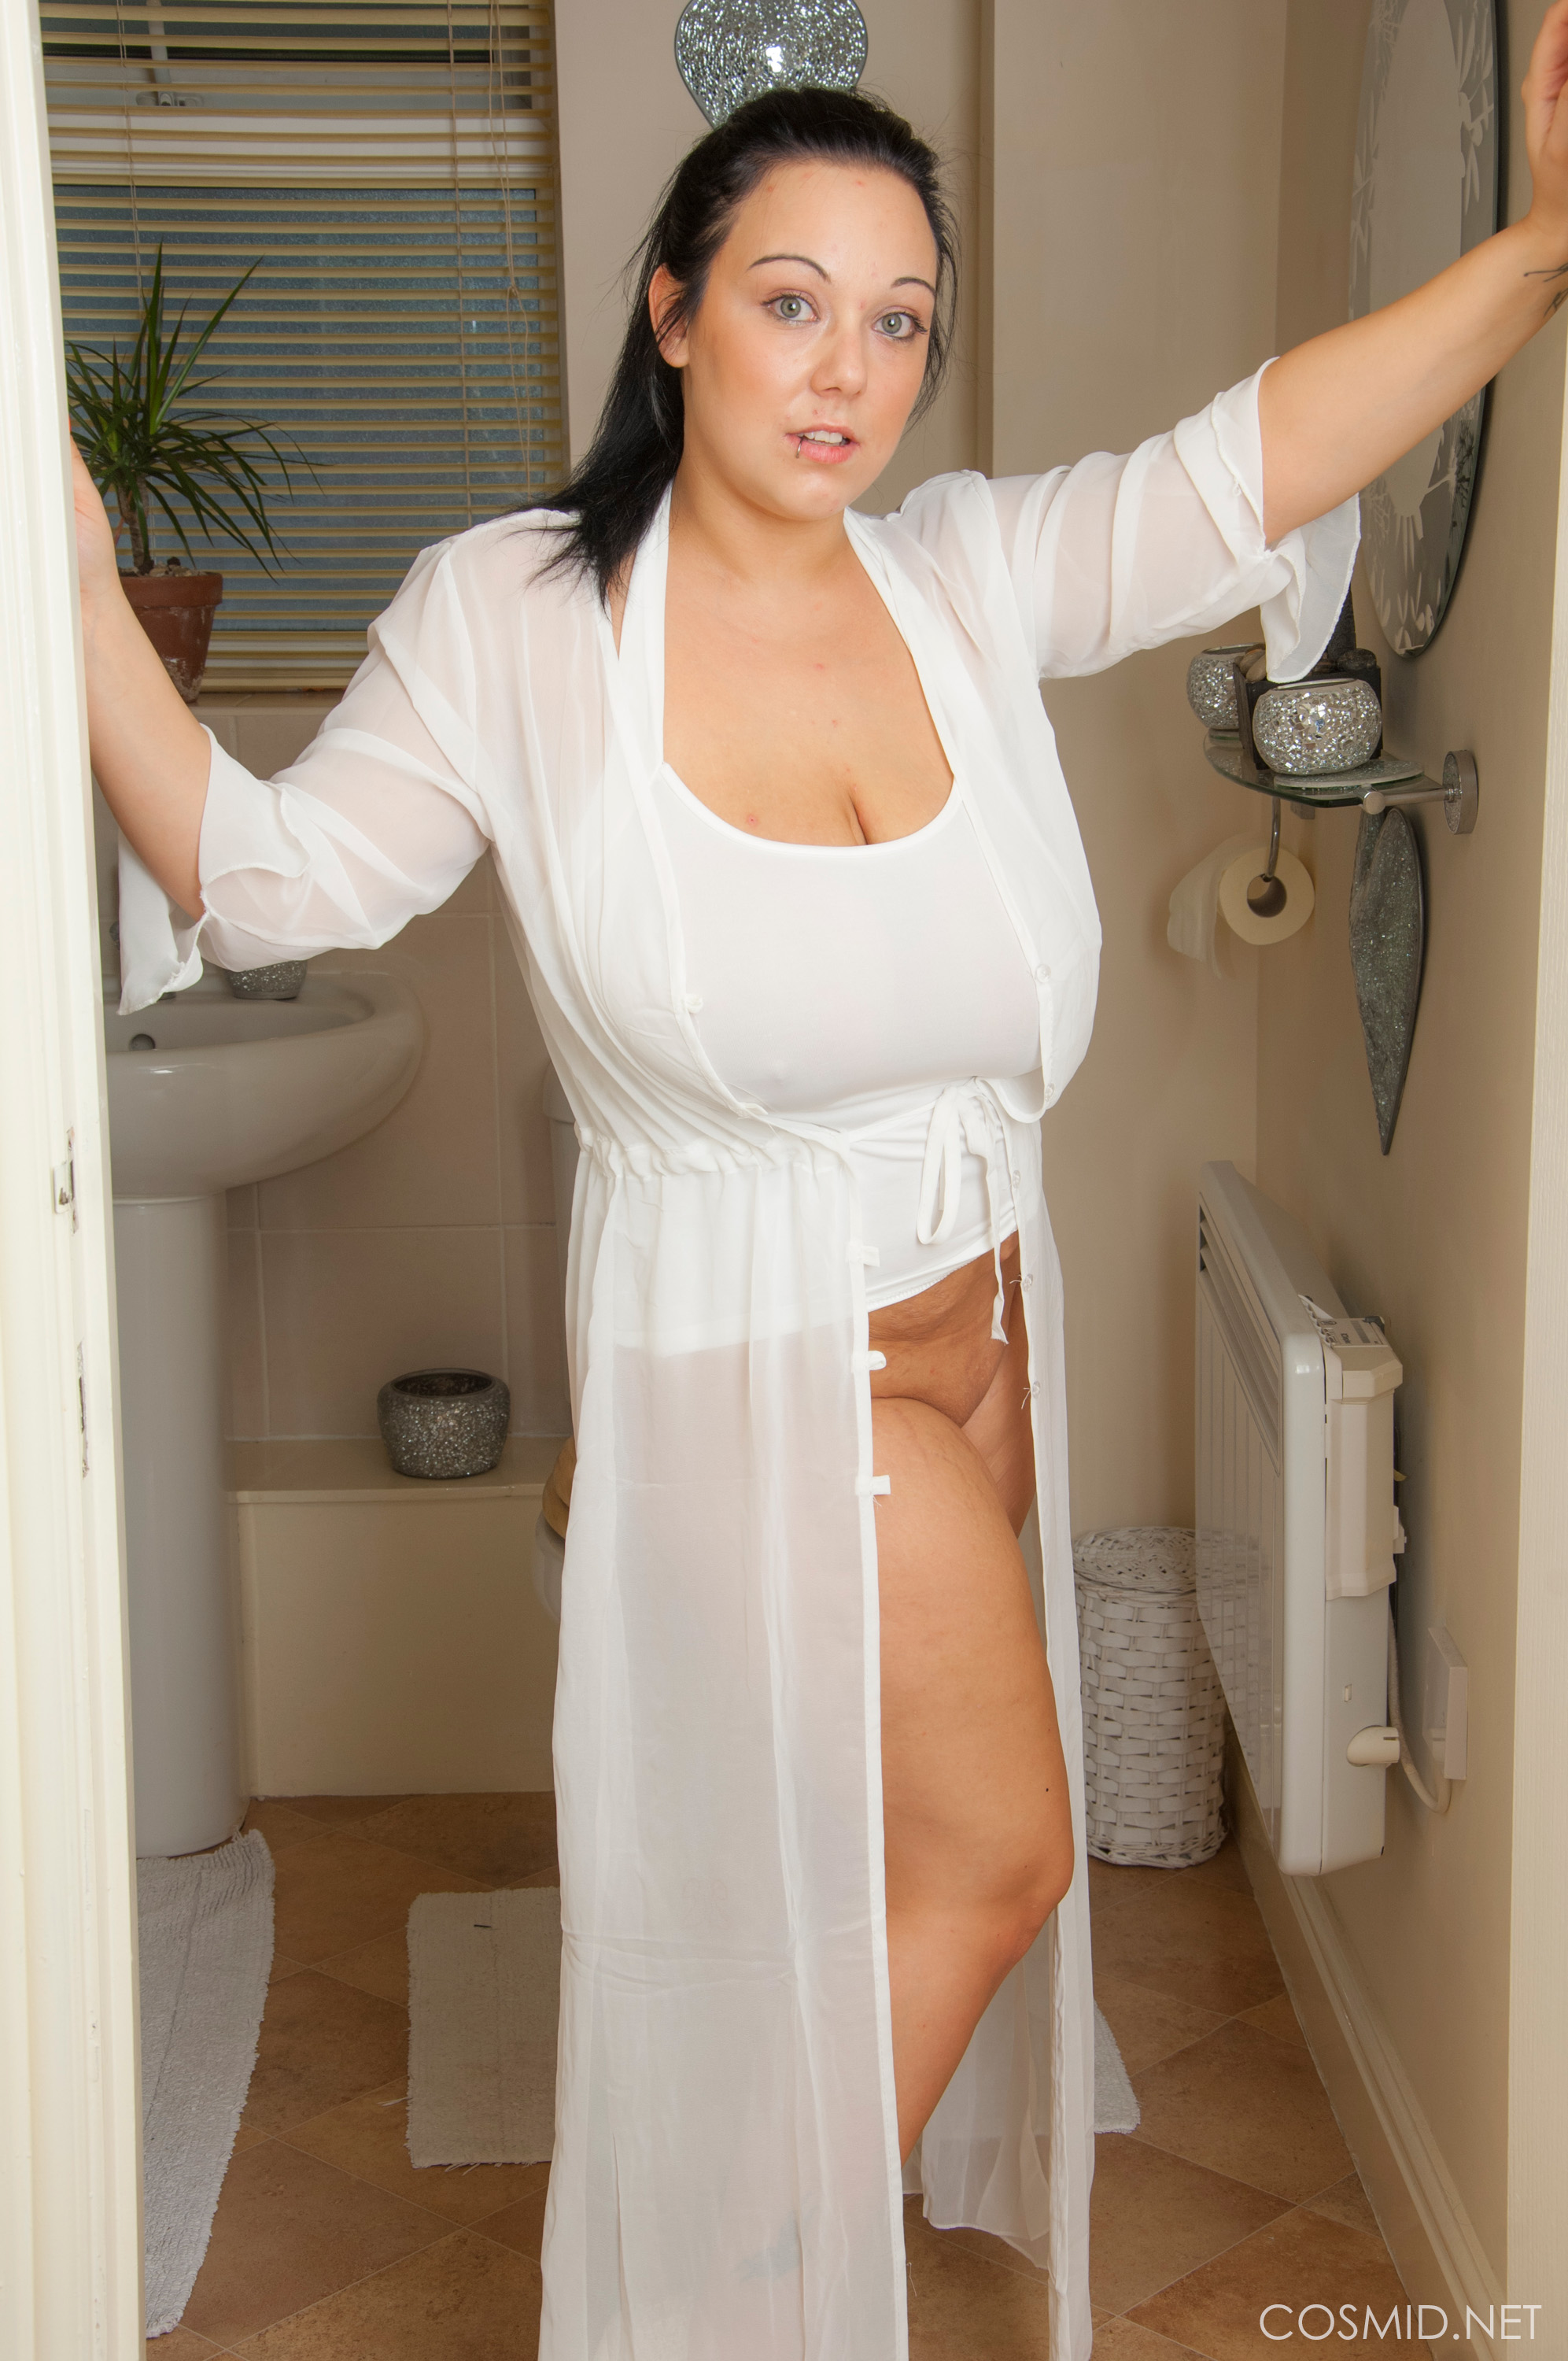 big beautiful woman Sexpot Nikki Stokes Gets Her Meaty Tatas and Round Arse Soaking Humid In The Baths